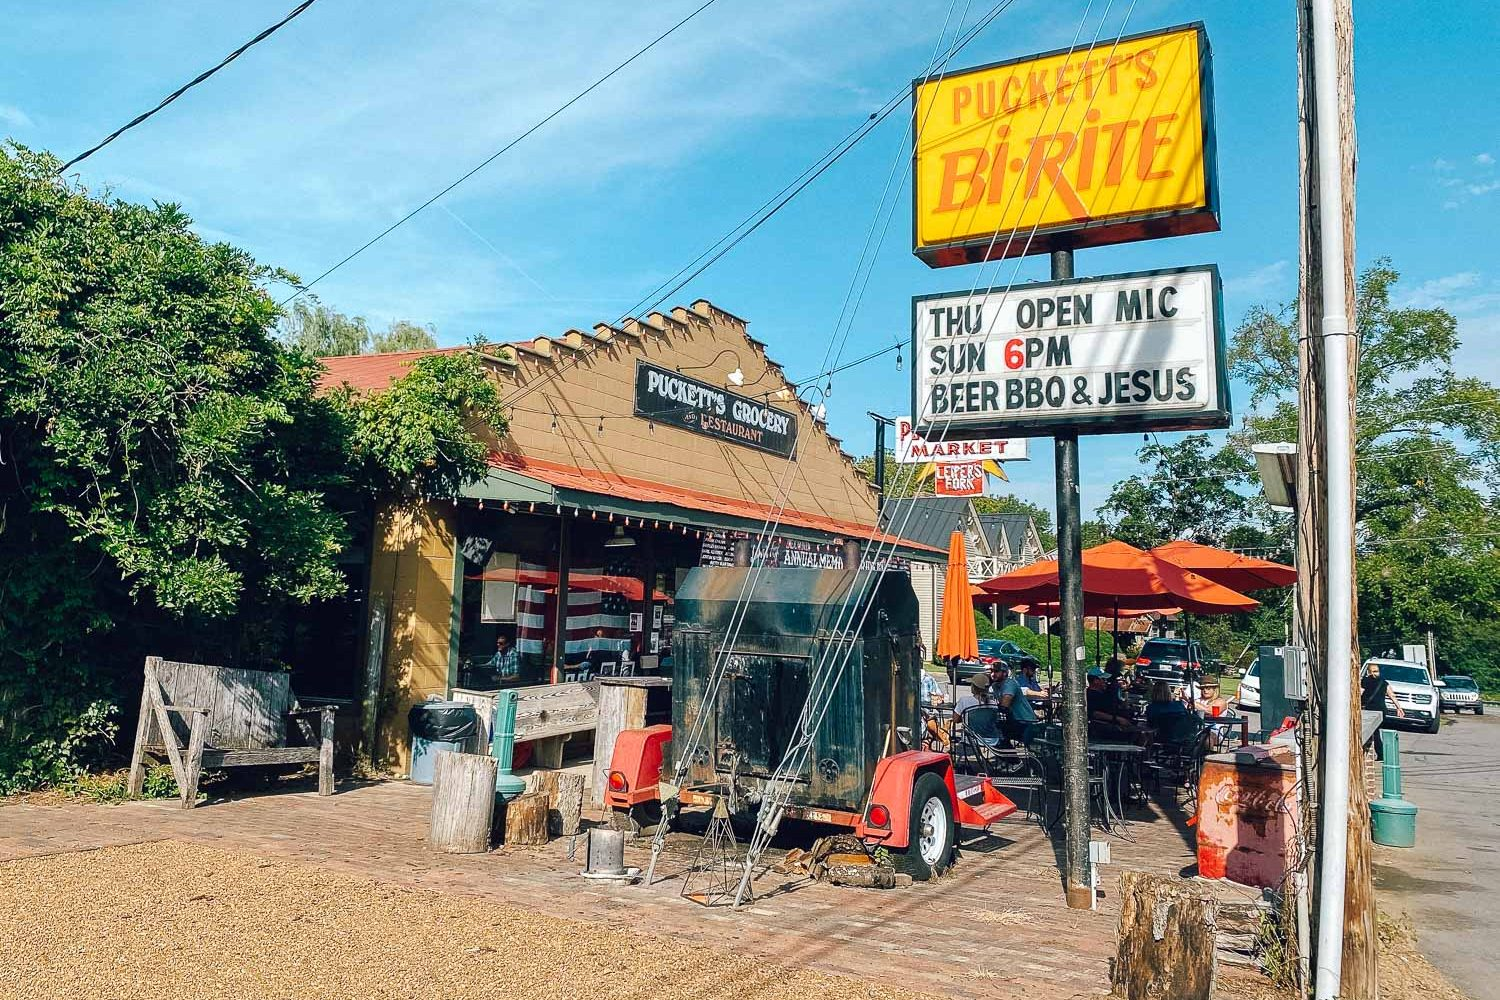 Puckett's of Leiper's Fork, Tennessee. A sign is advertising open mic, plus beer, bbq, and Jesus, all fun things to do in Leiper's Fork - bucket list travel